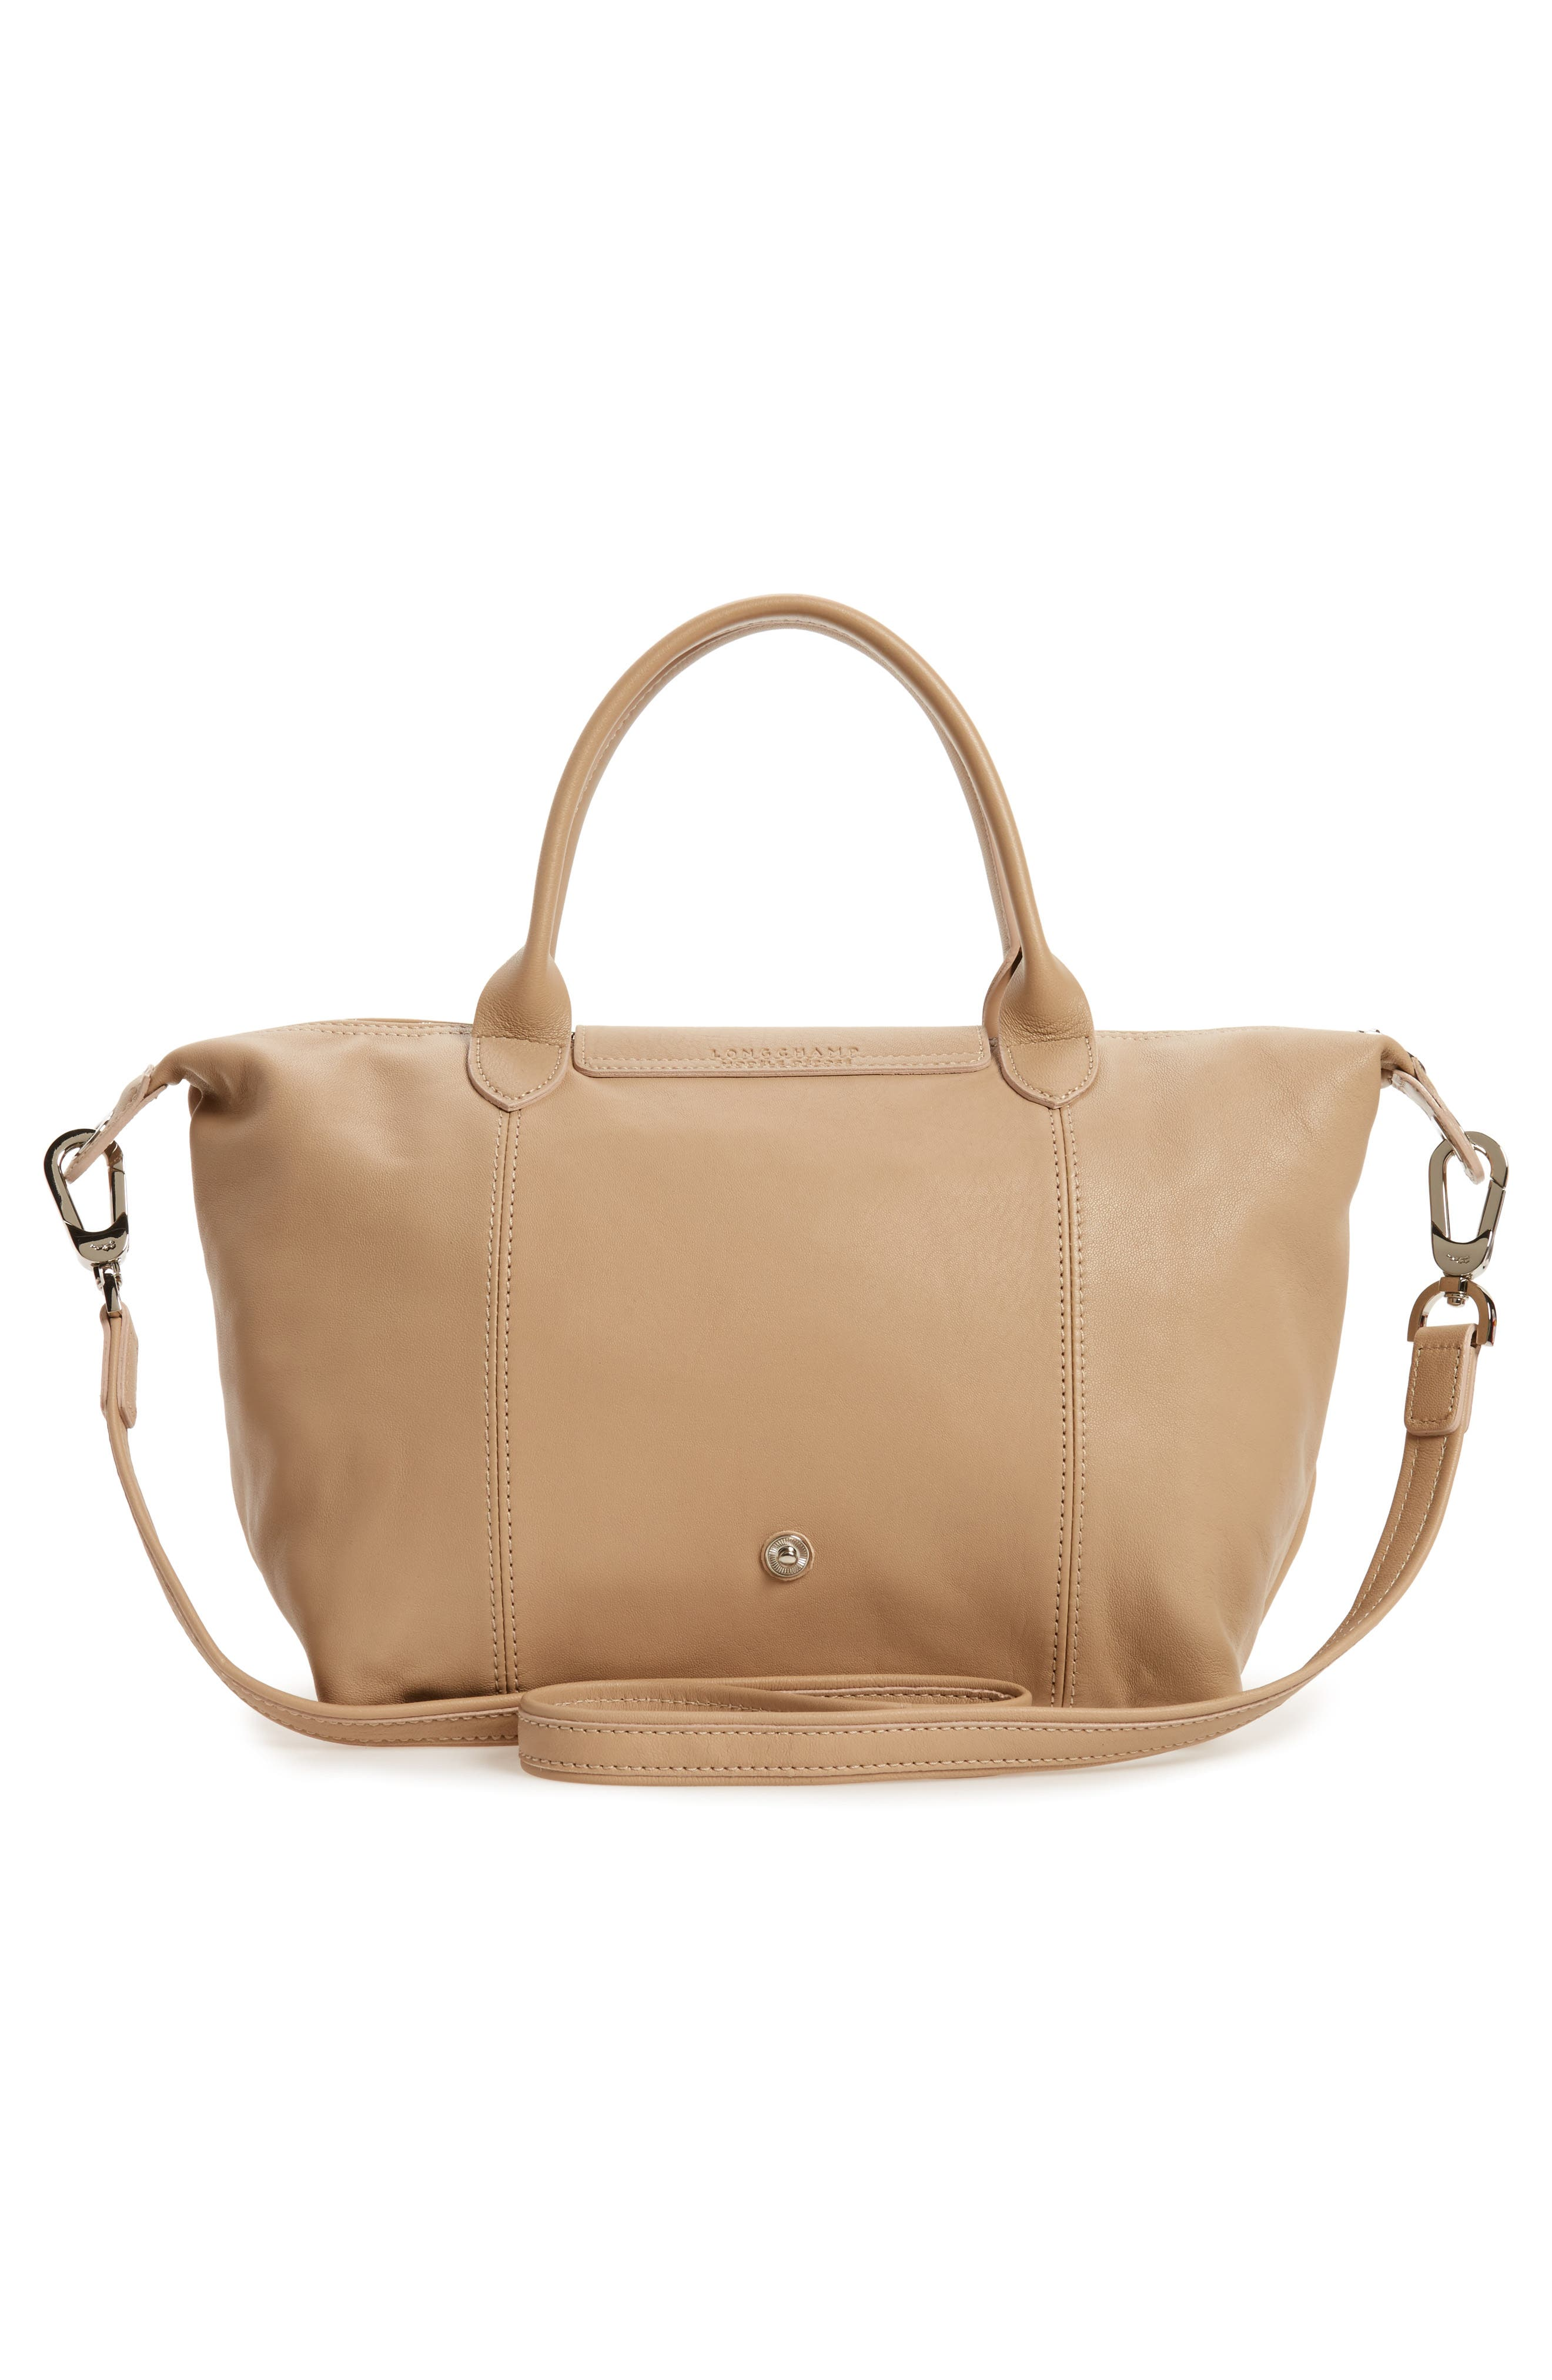 Small 'Le Pliage Cuir' Leather Top Handle Tote,                             Alternate thumbnail 46, color,